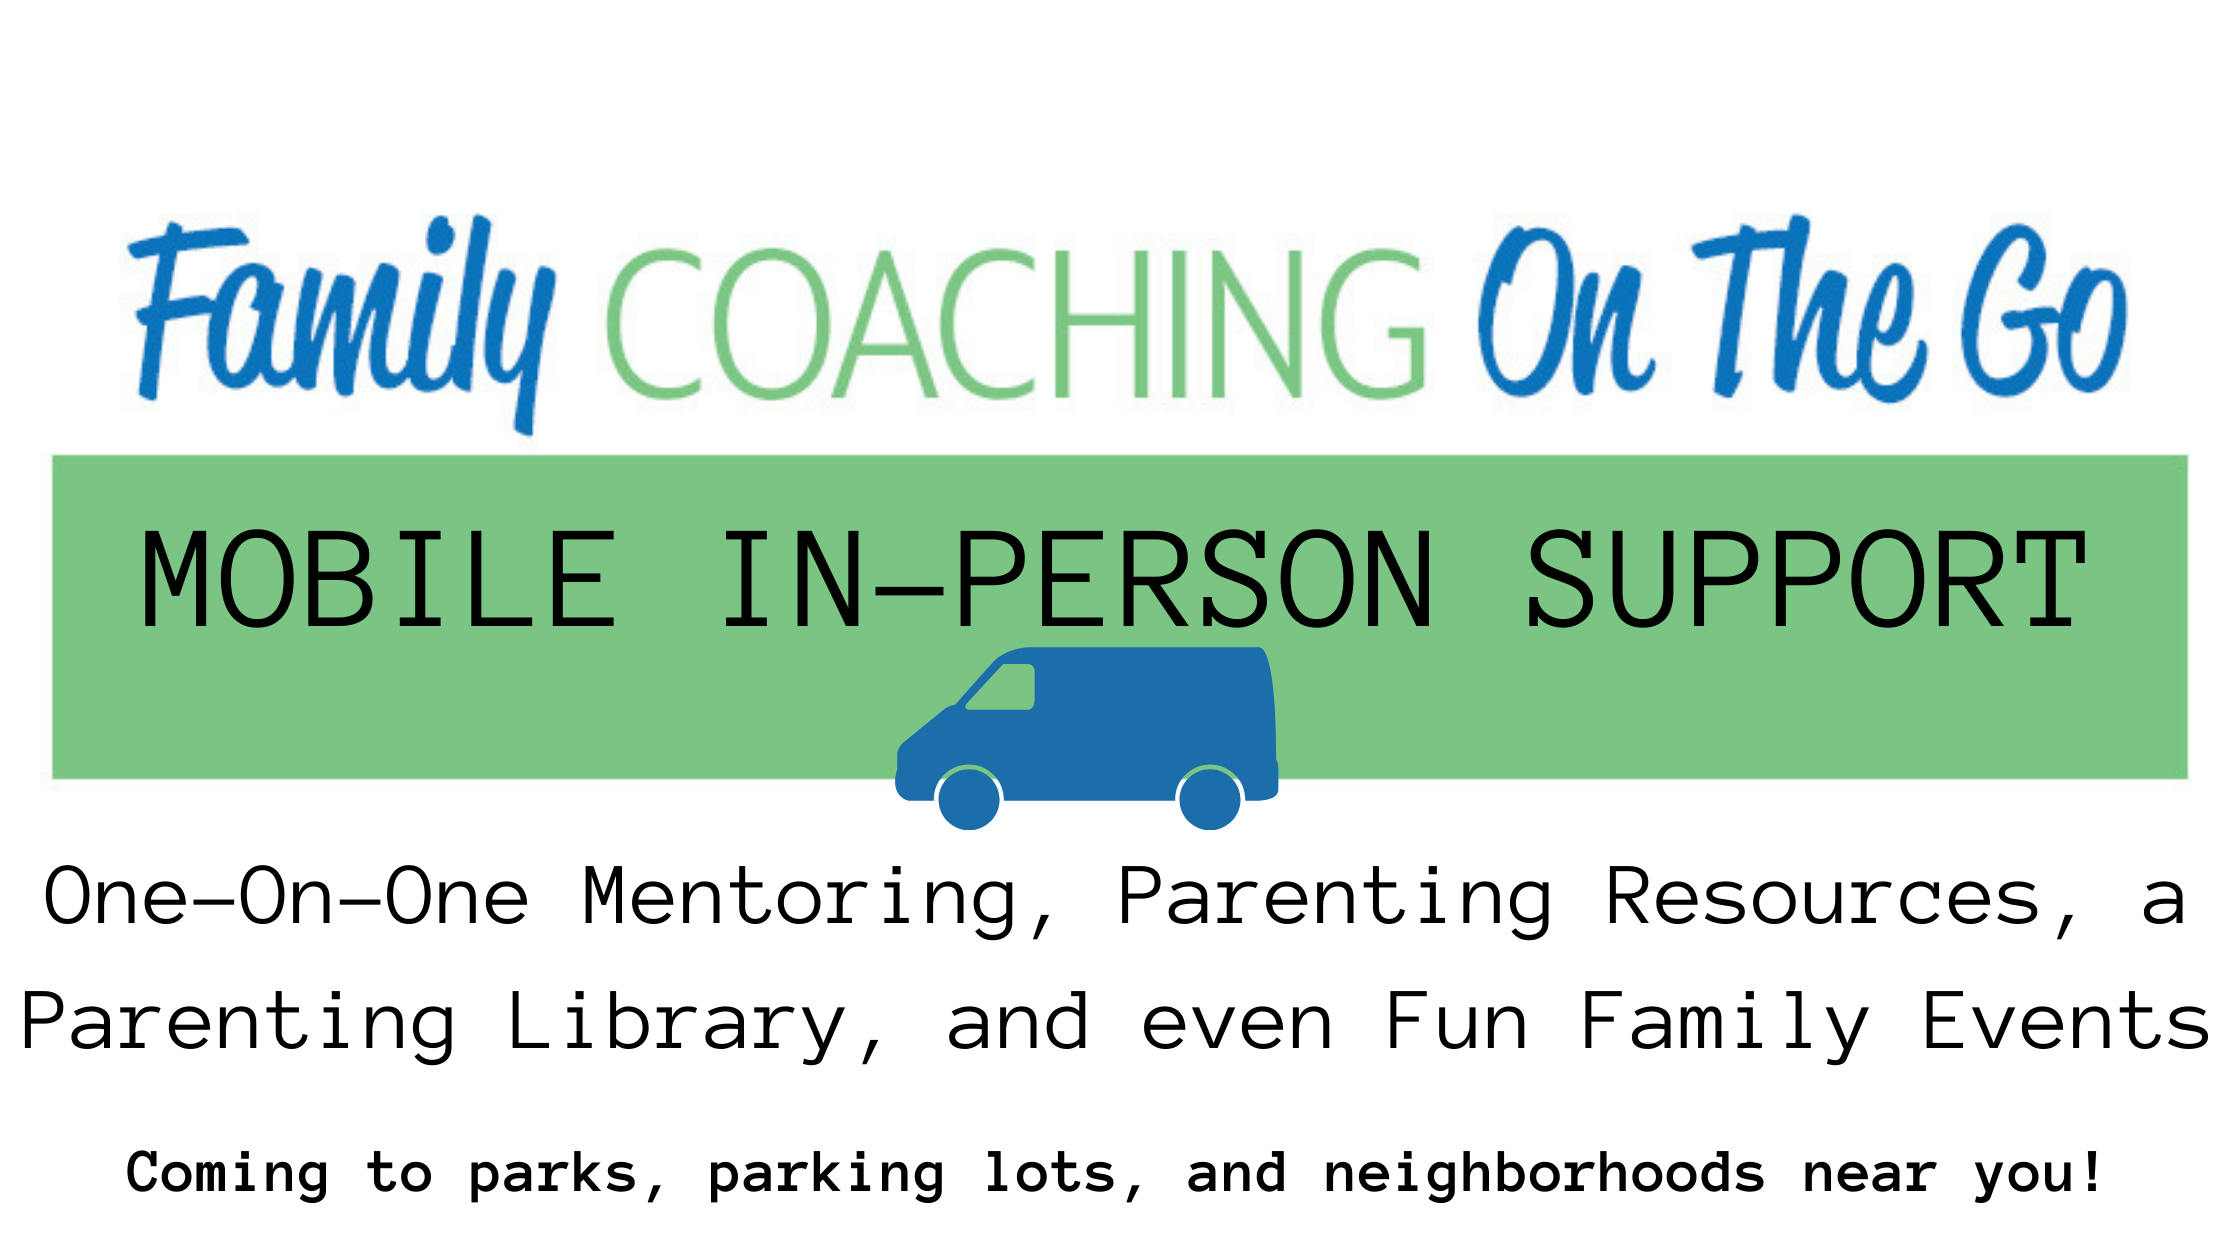 Family Coaching On the Go MOBILE SUPPORT